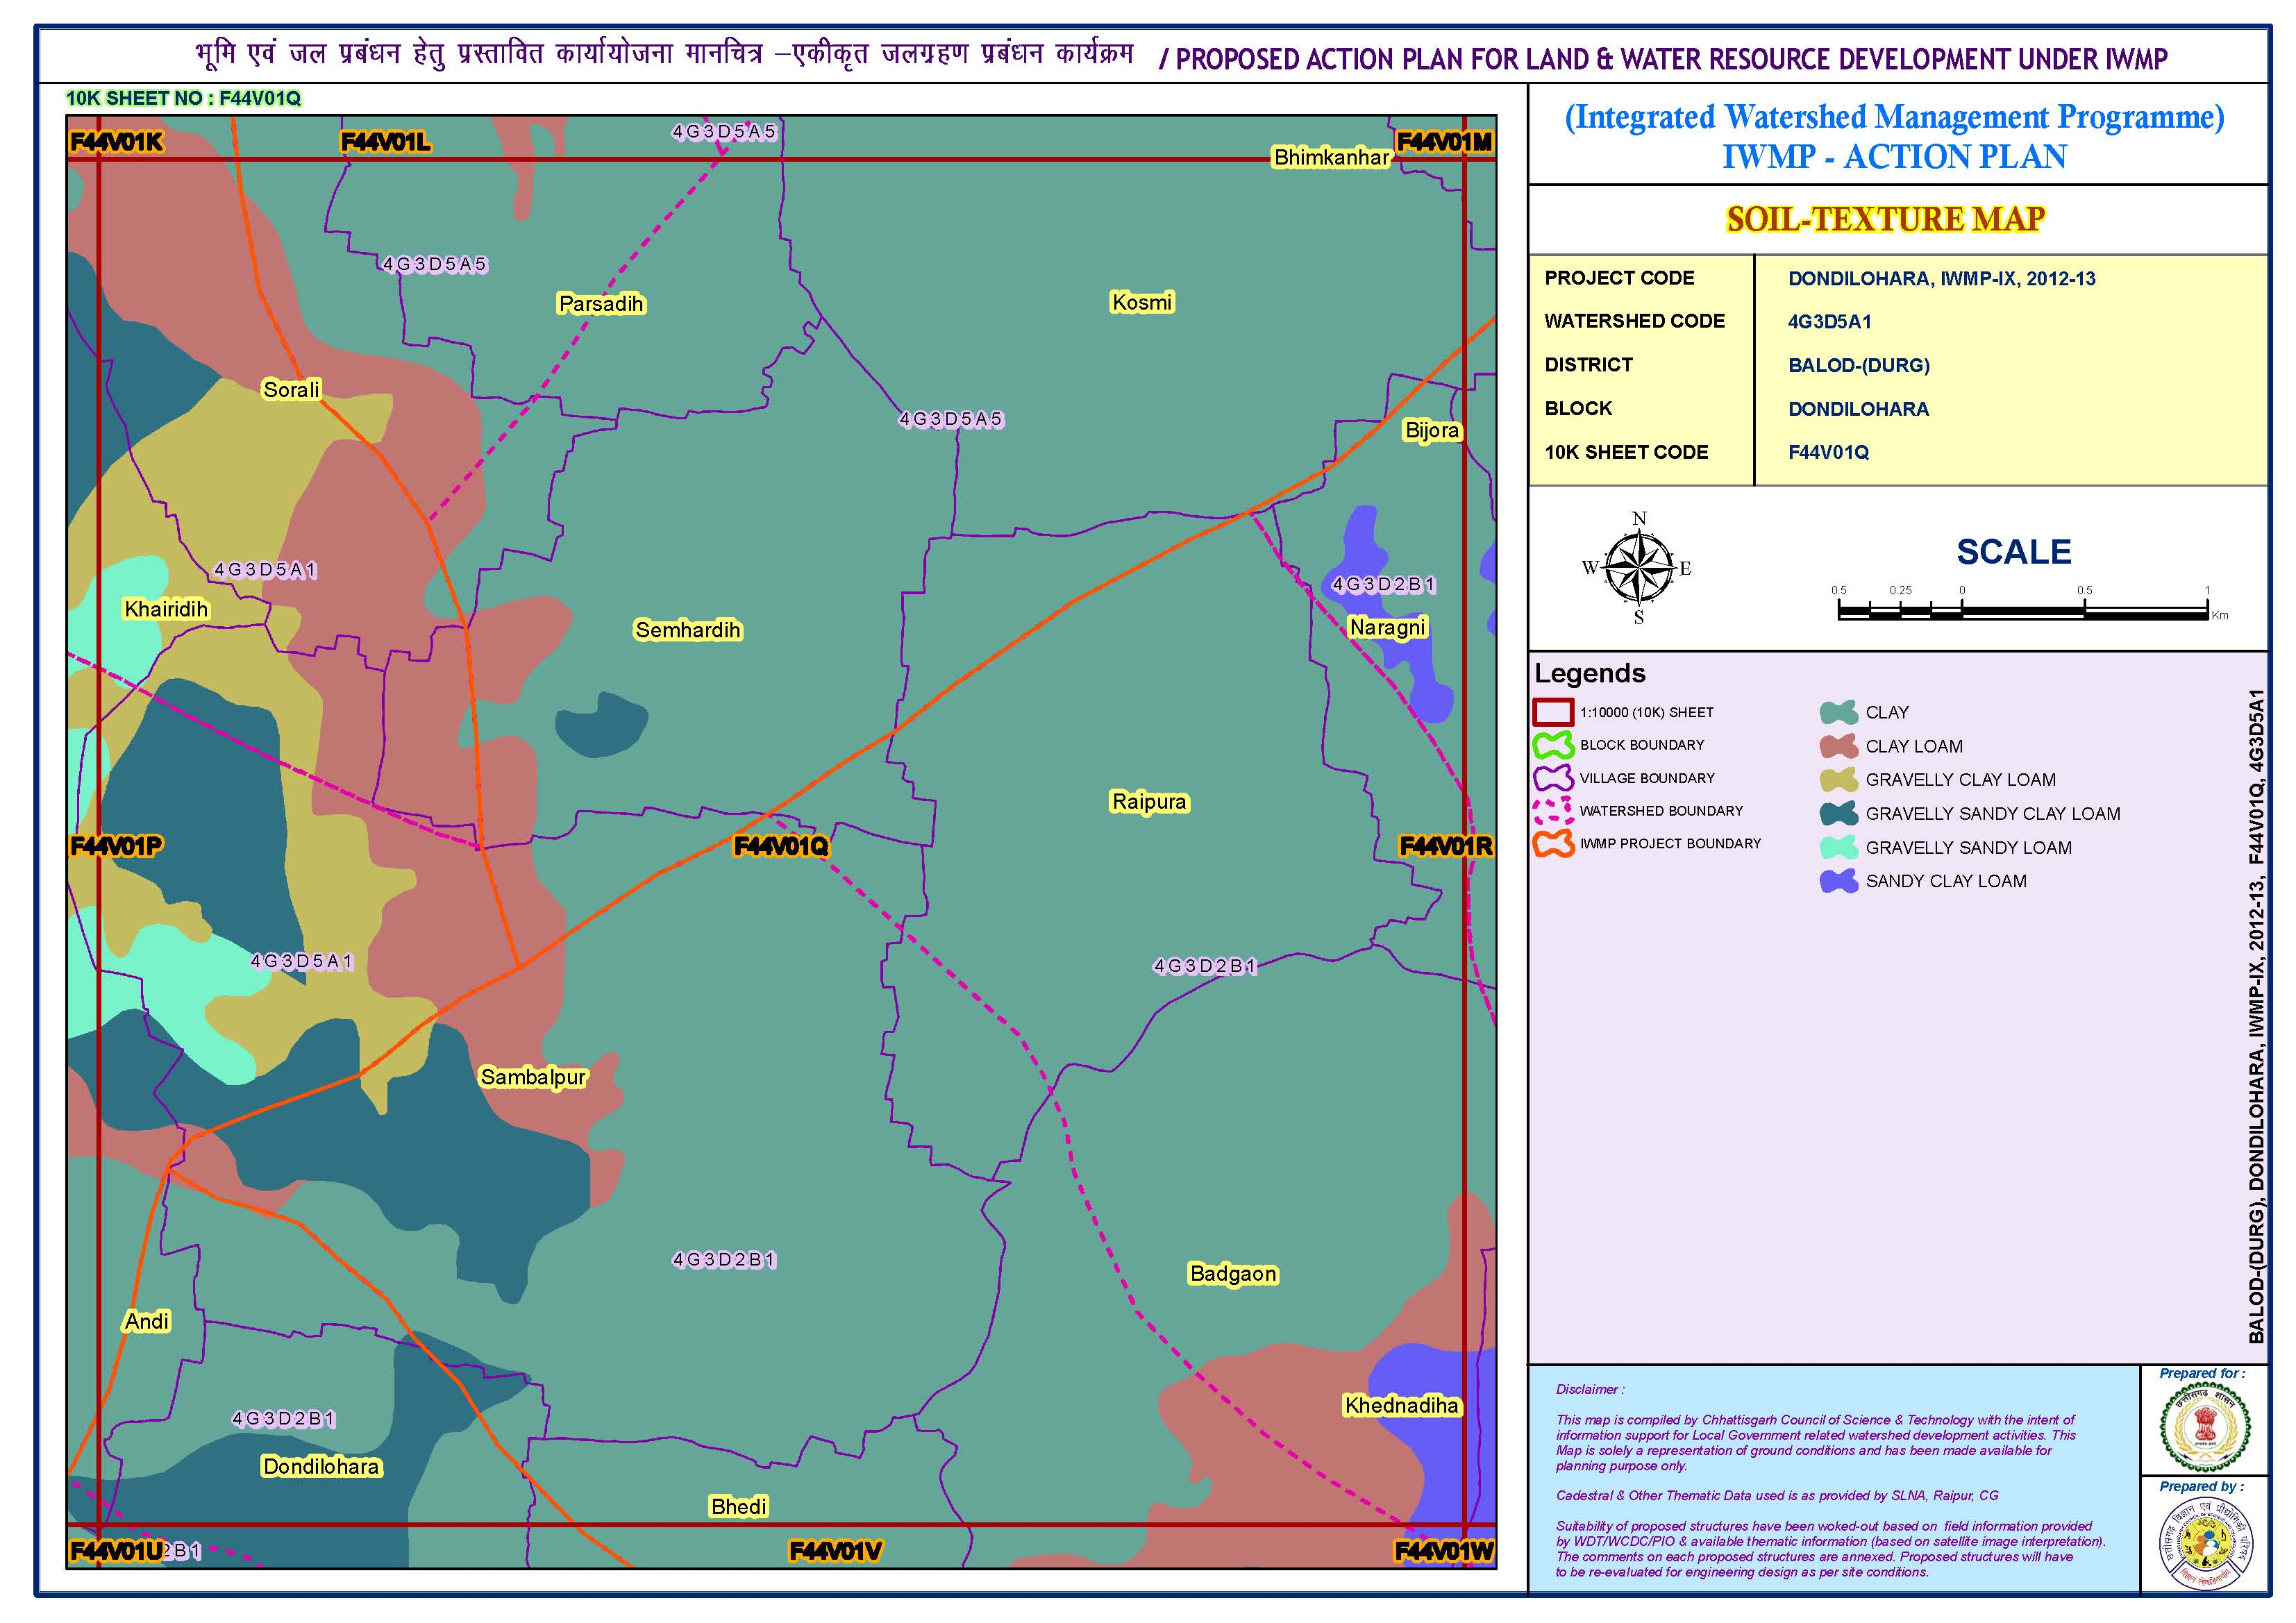 Proposed action plan for land and water resource development (Soil-texture map)